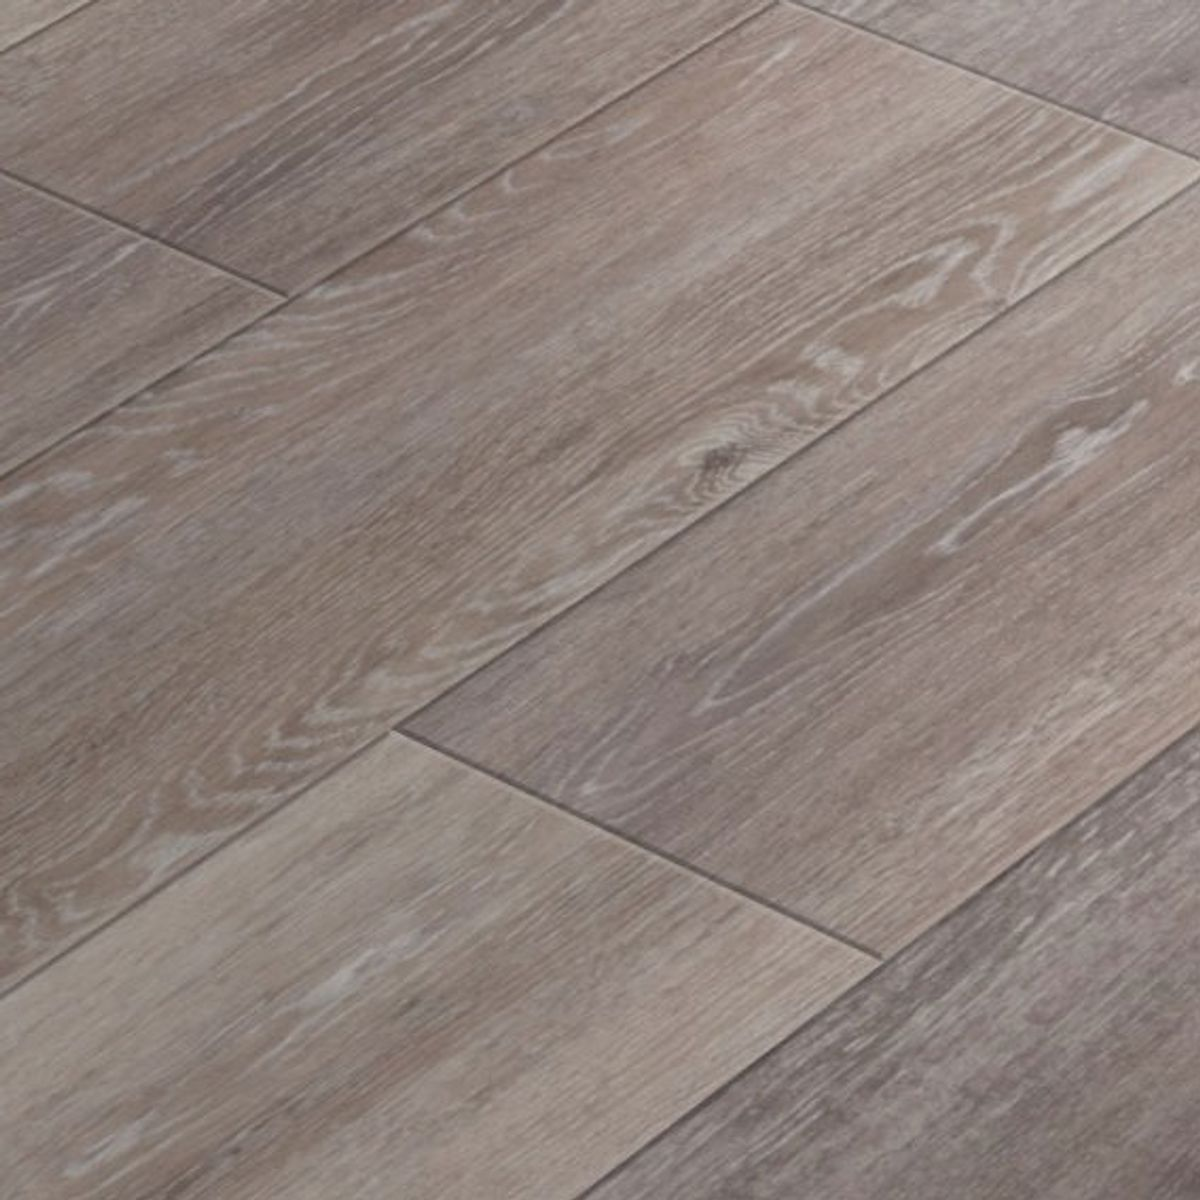 Lame pvc clipsable Trevise click taupe 200x1220mm